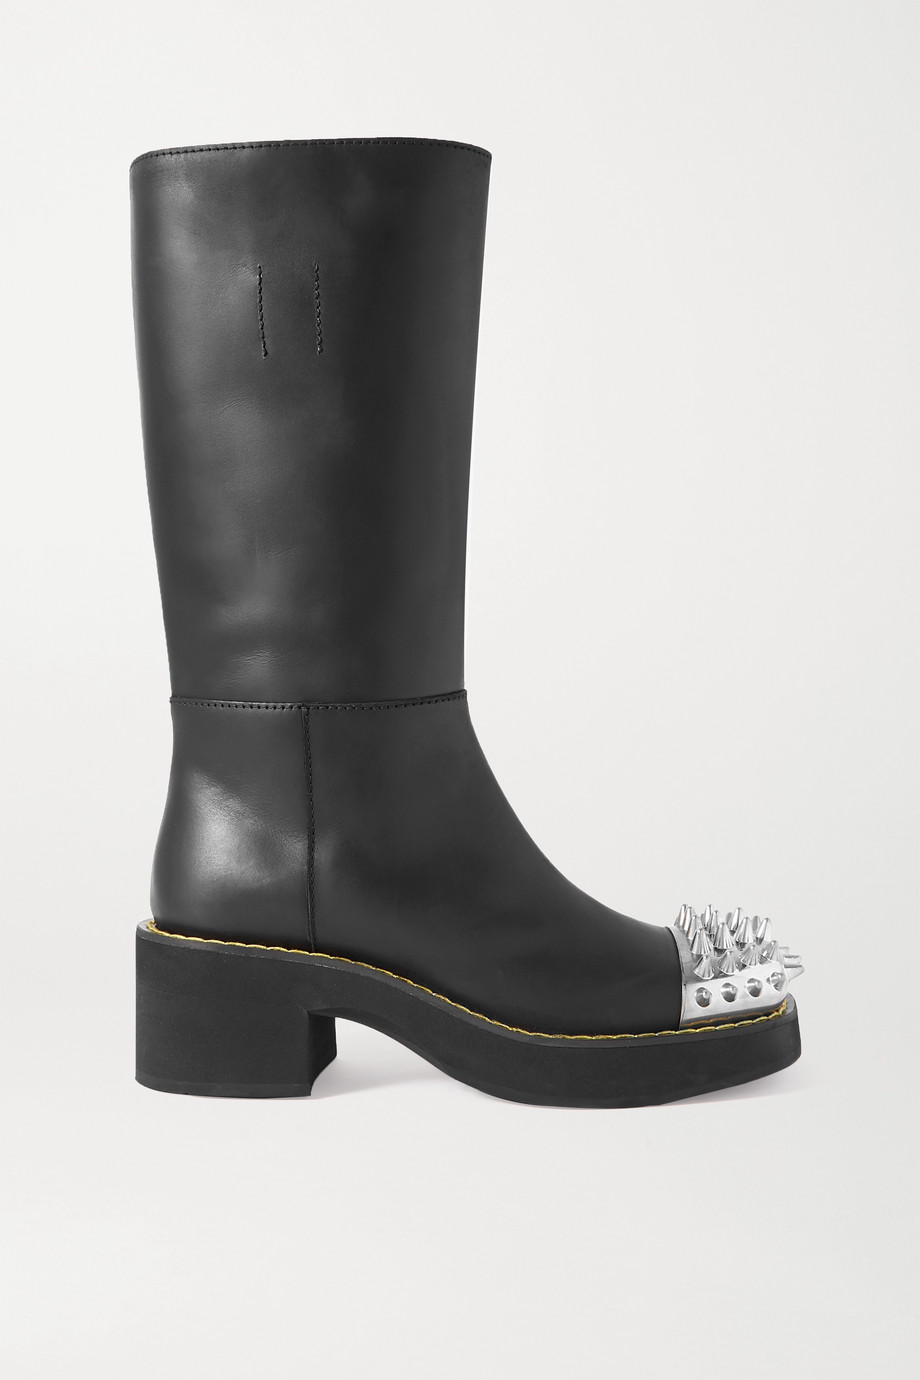 Miu Miu Spiked leather boots